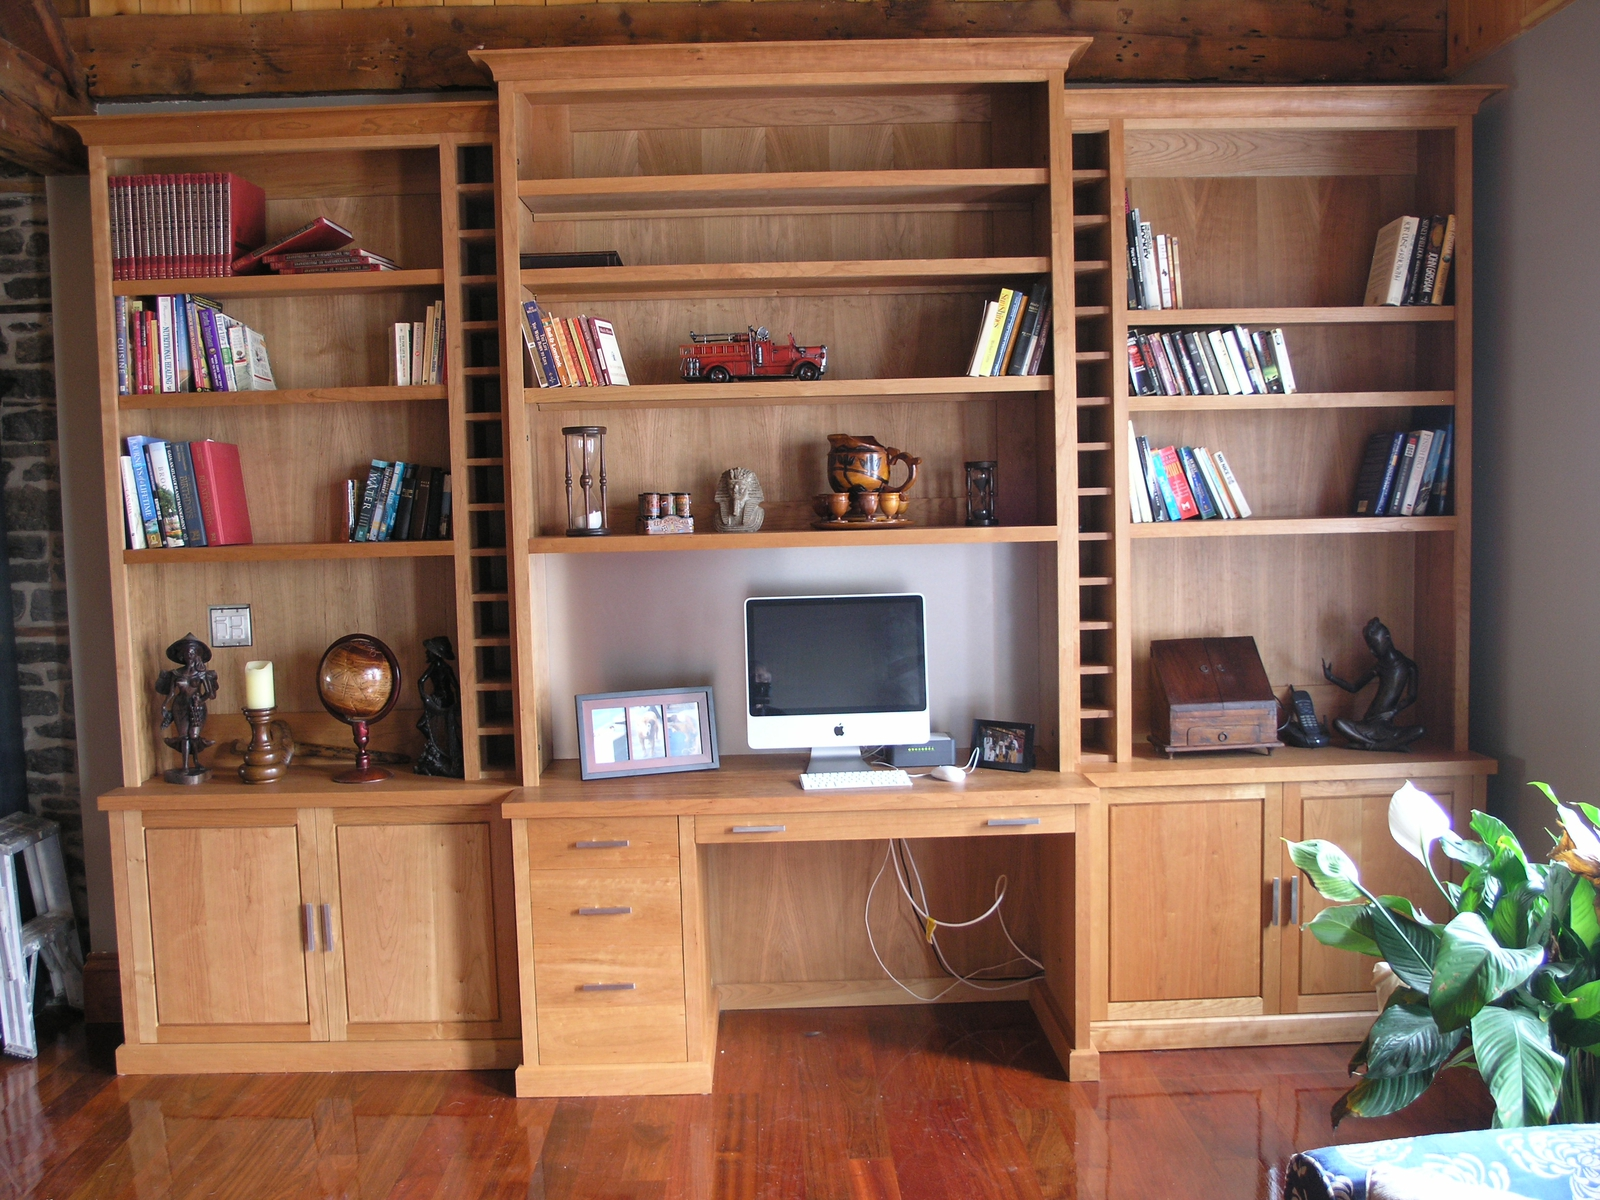 Mudroom Wall Unit With Computer Desk And Under Cabinet Systems Made From Solid Wood Some Books